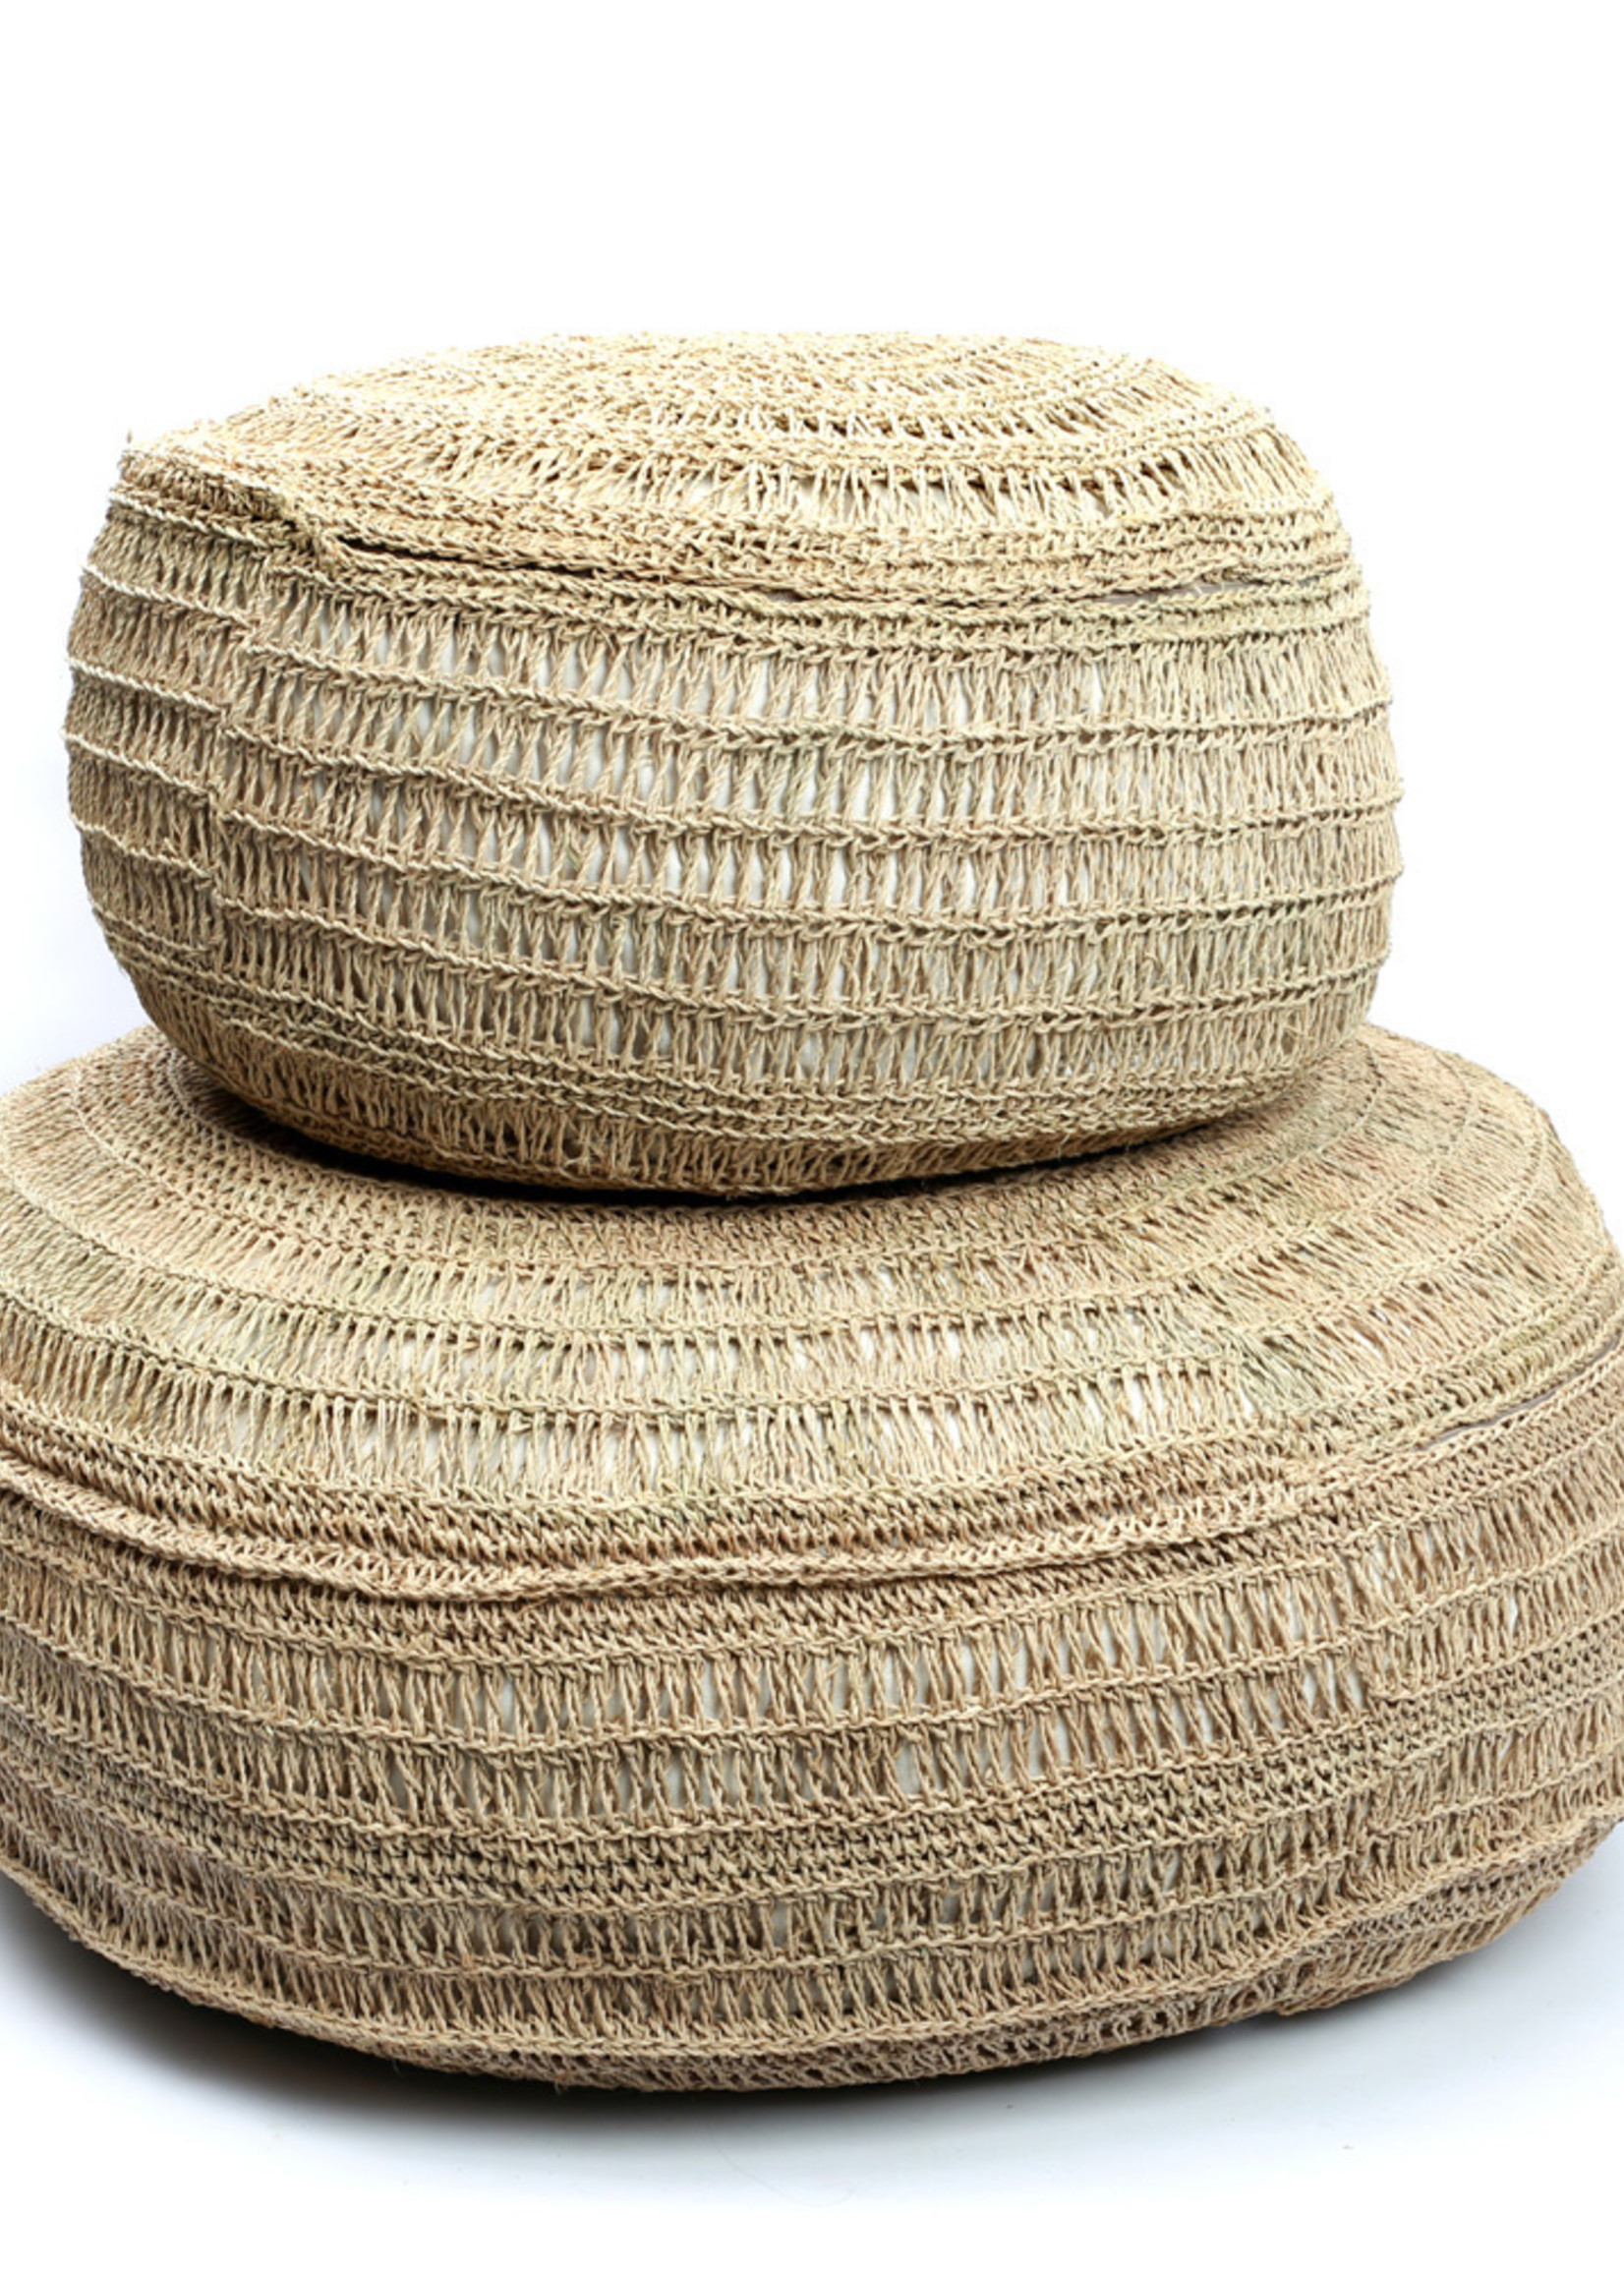 The Seagrass Pouffe - Natural - M